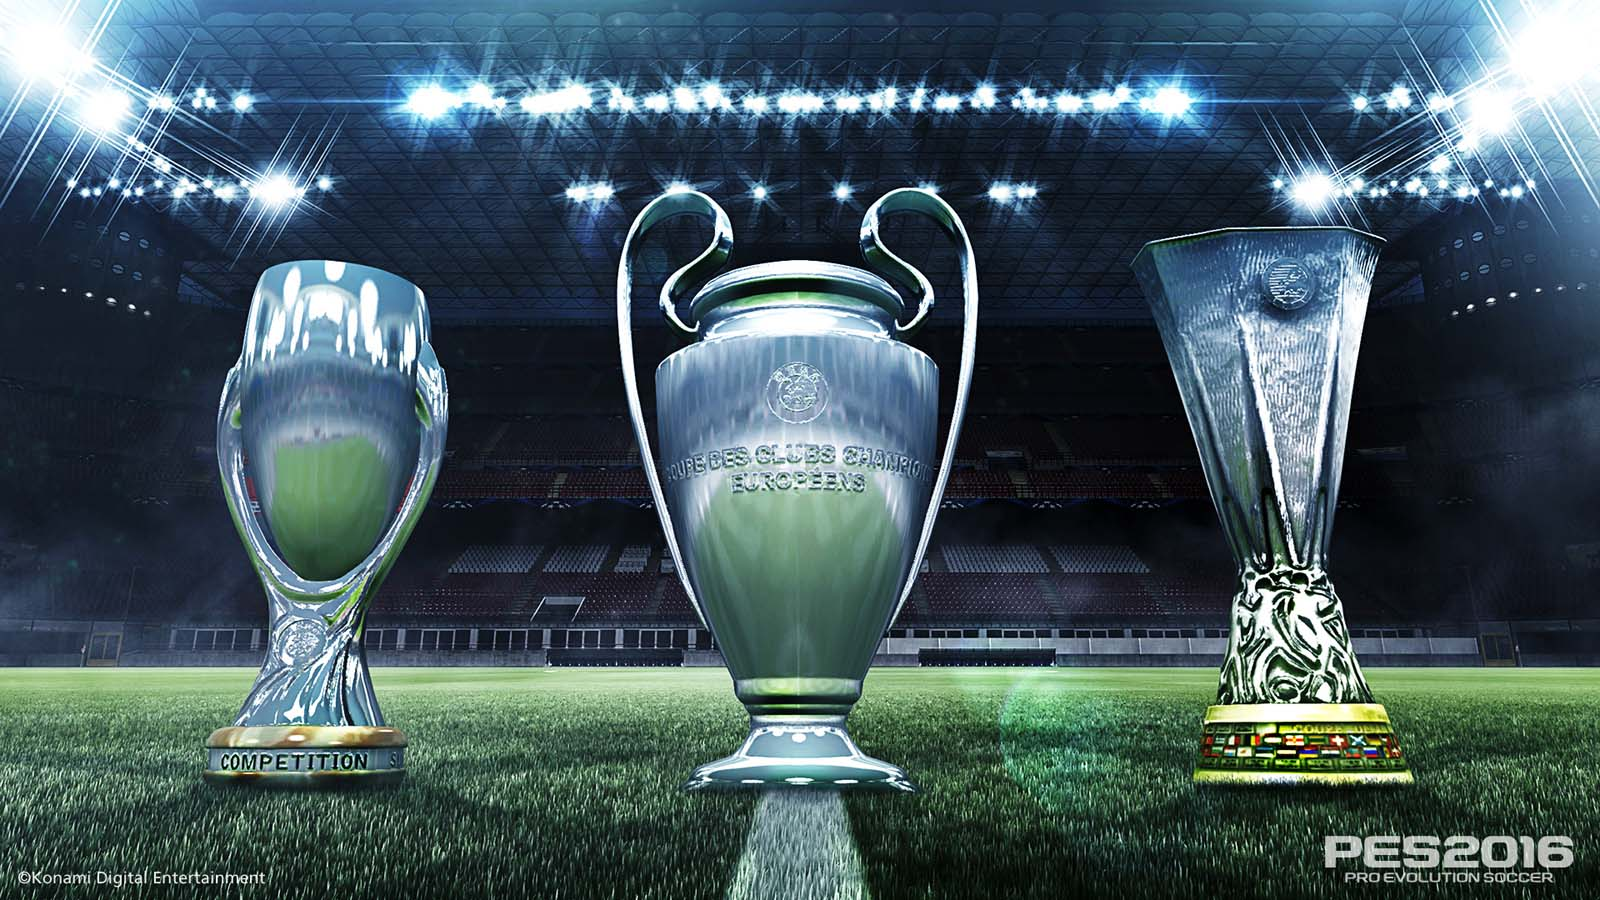 konami-and-uefa-announce-three-year-cham